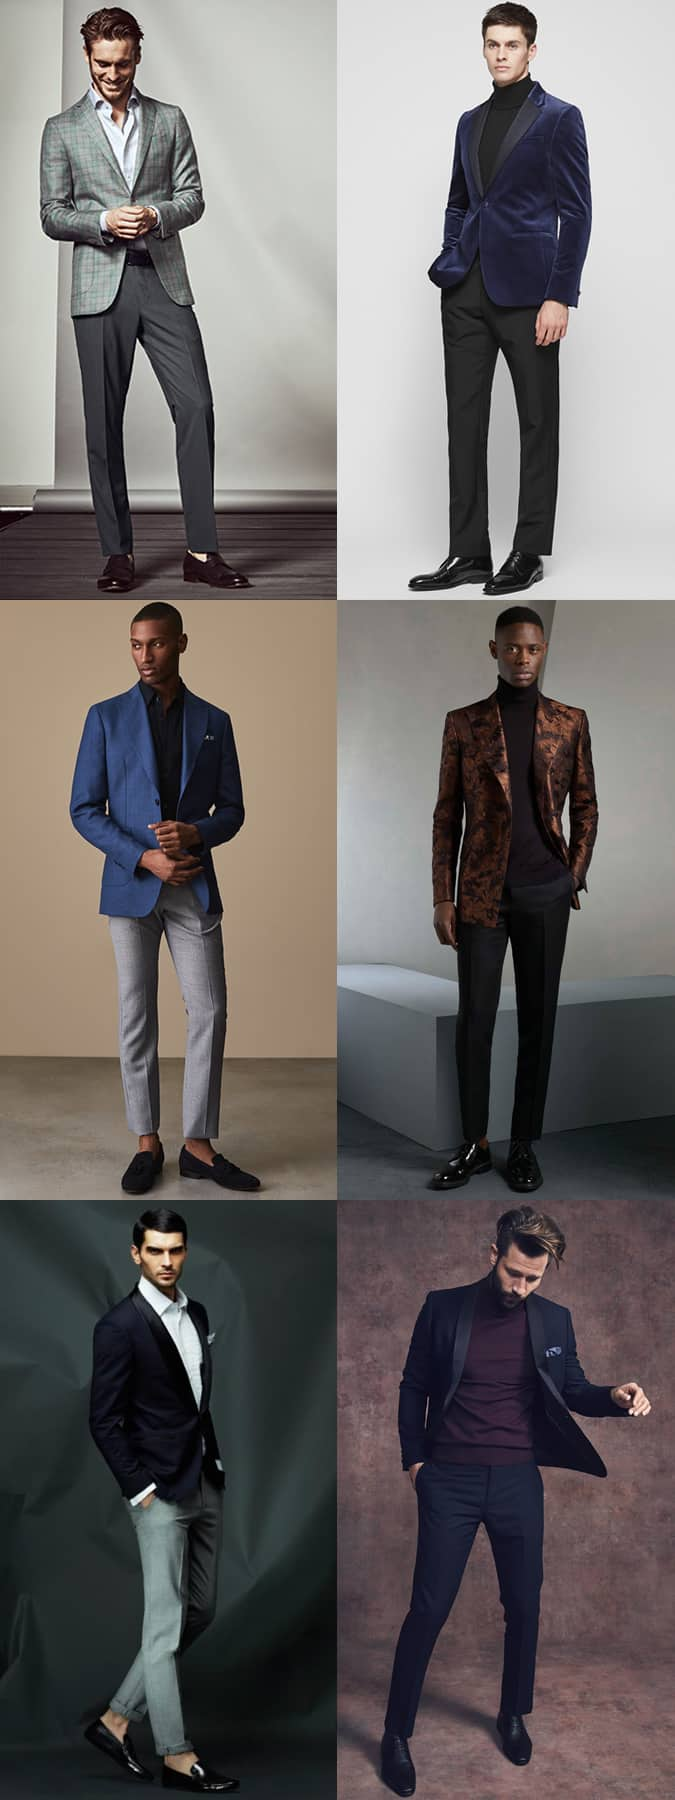 Men's Cocktail Attire Outfit Inspiration